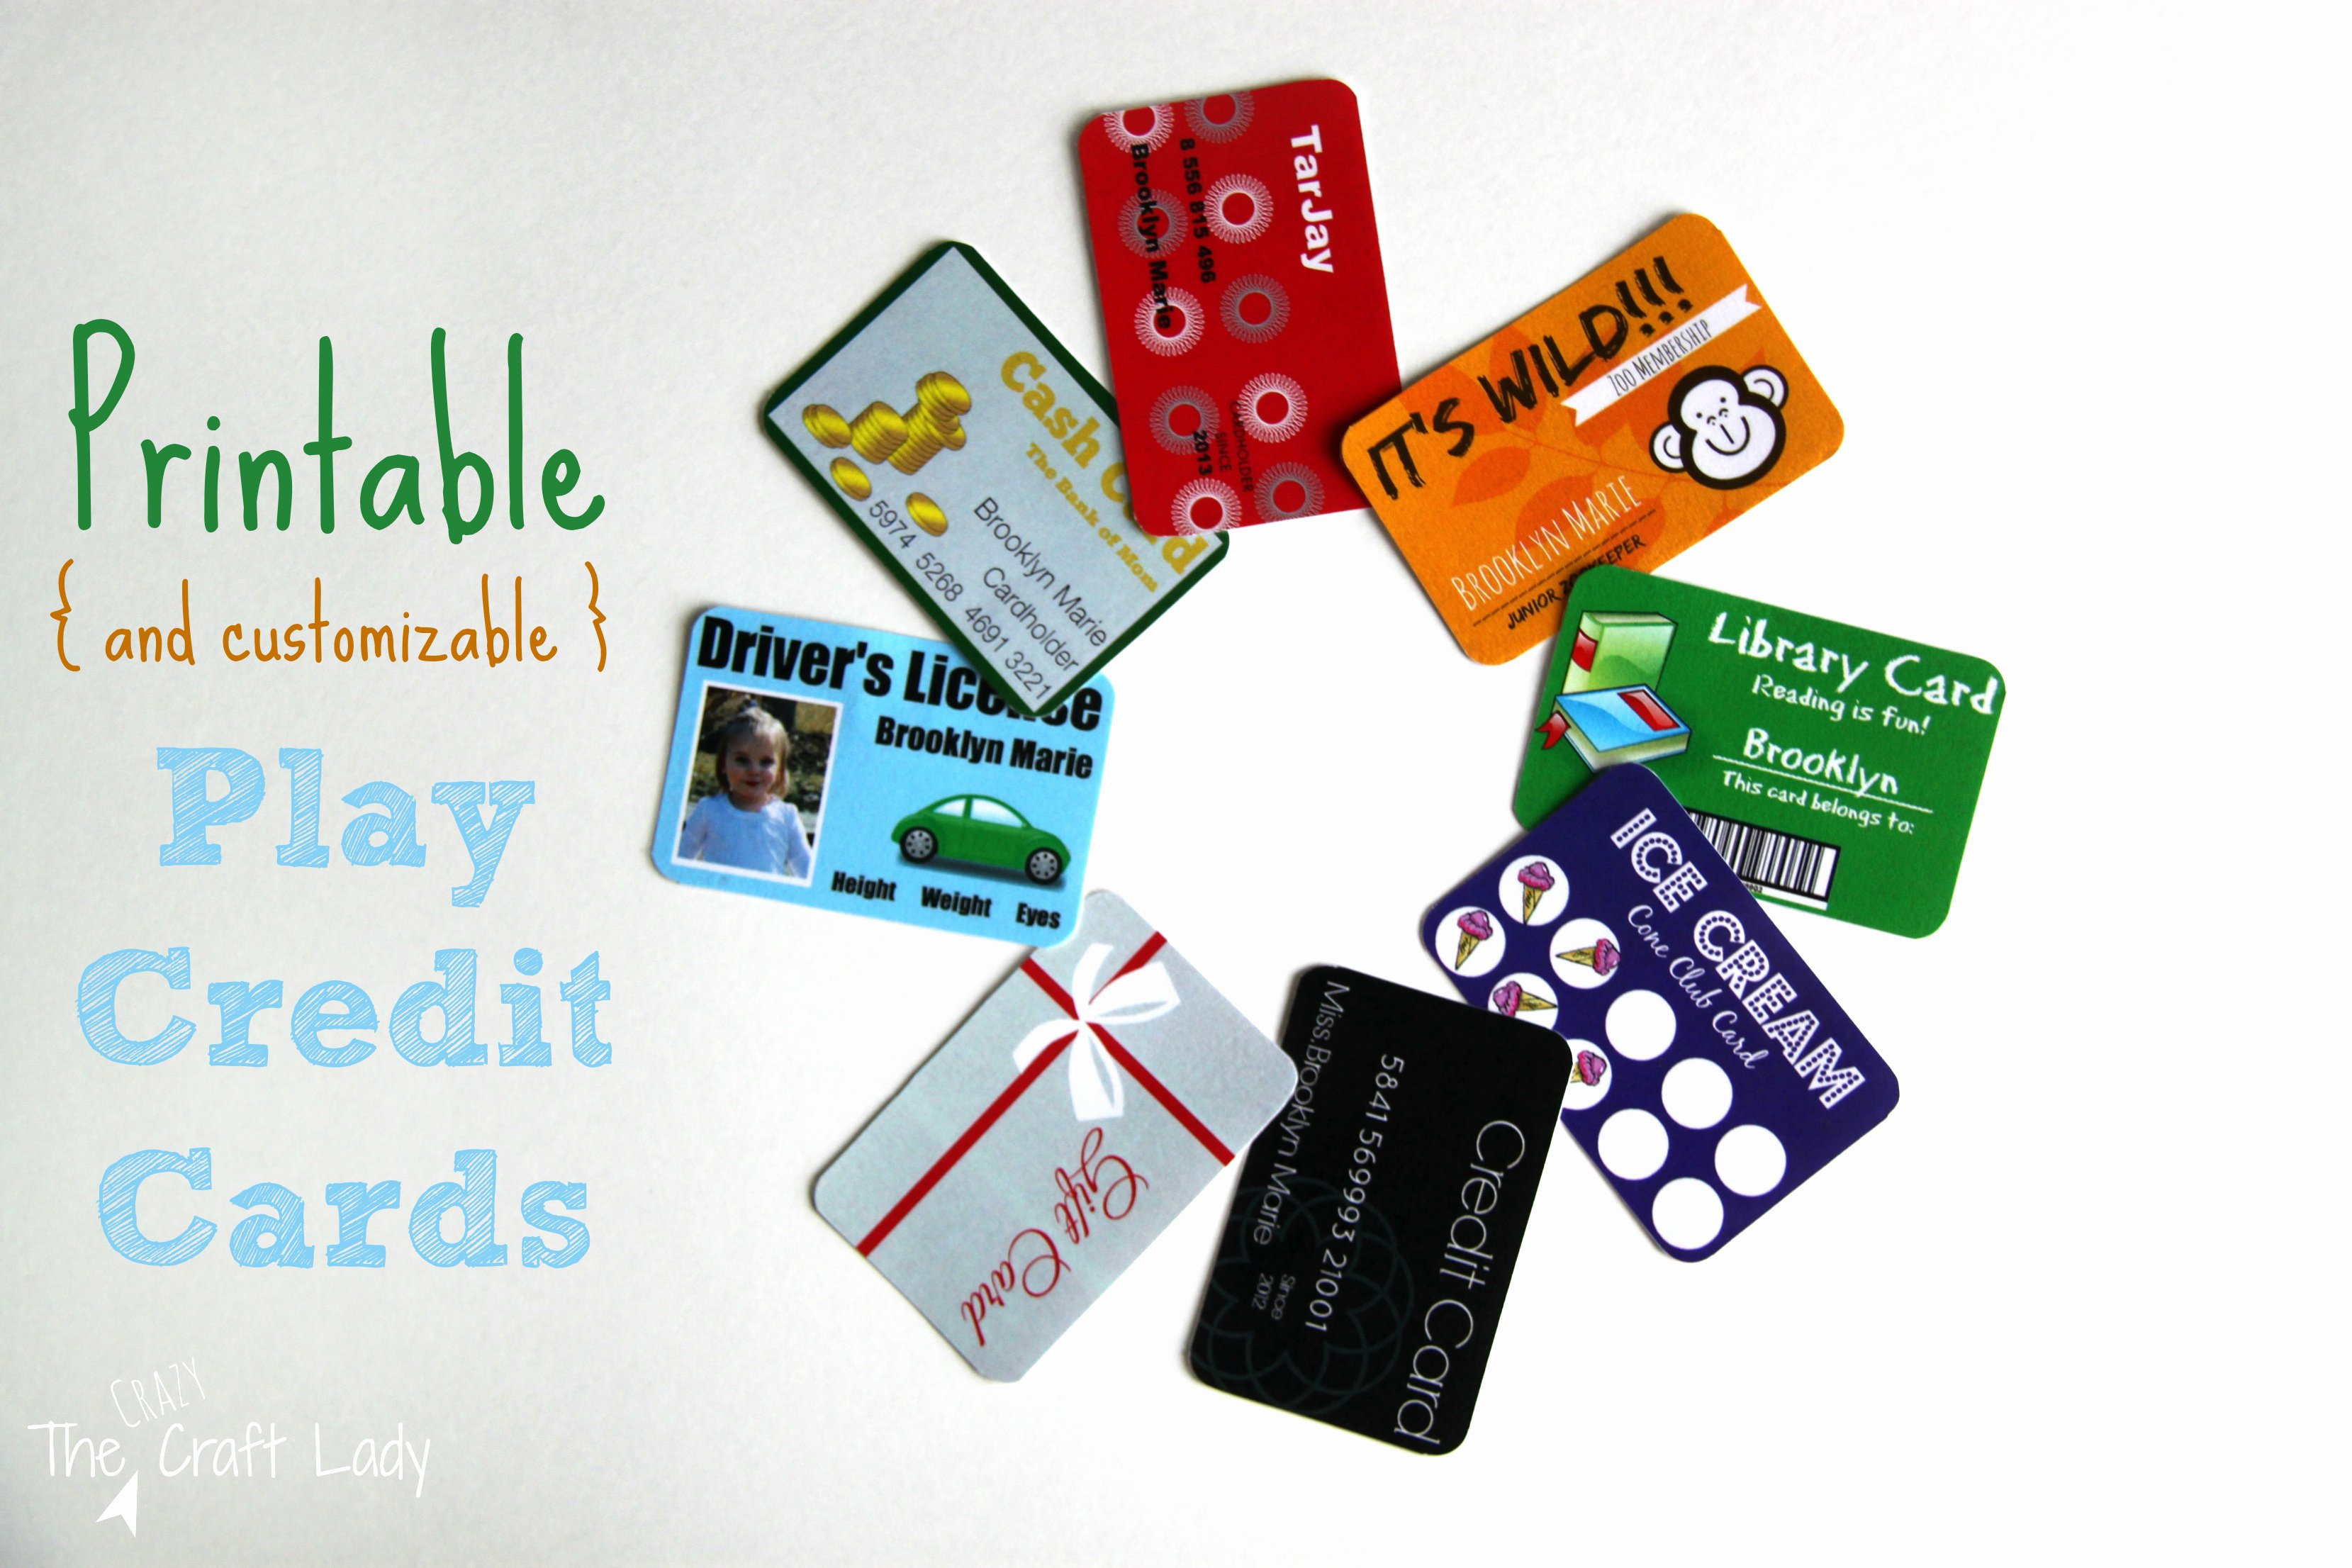 Credit Card Template Maker Elegant Printable and Customizable Play Credit Cards the Crazy